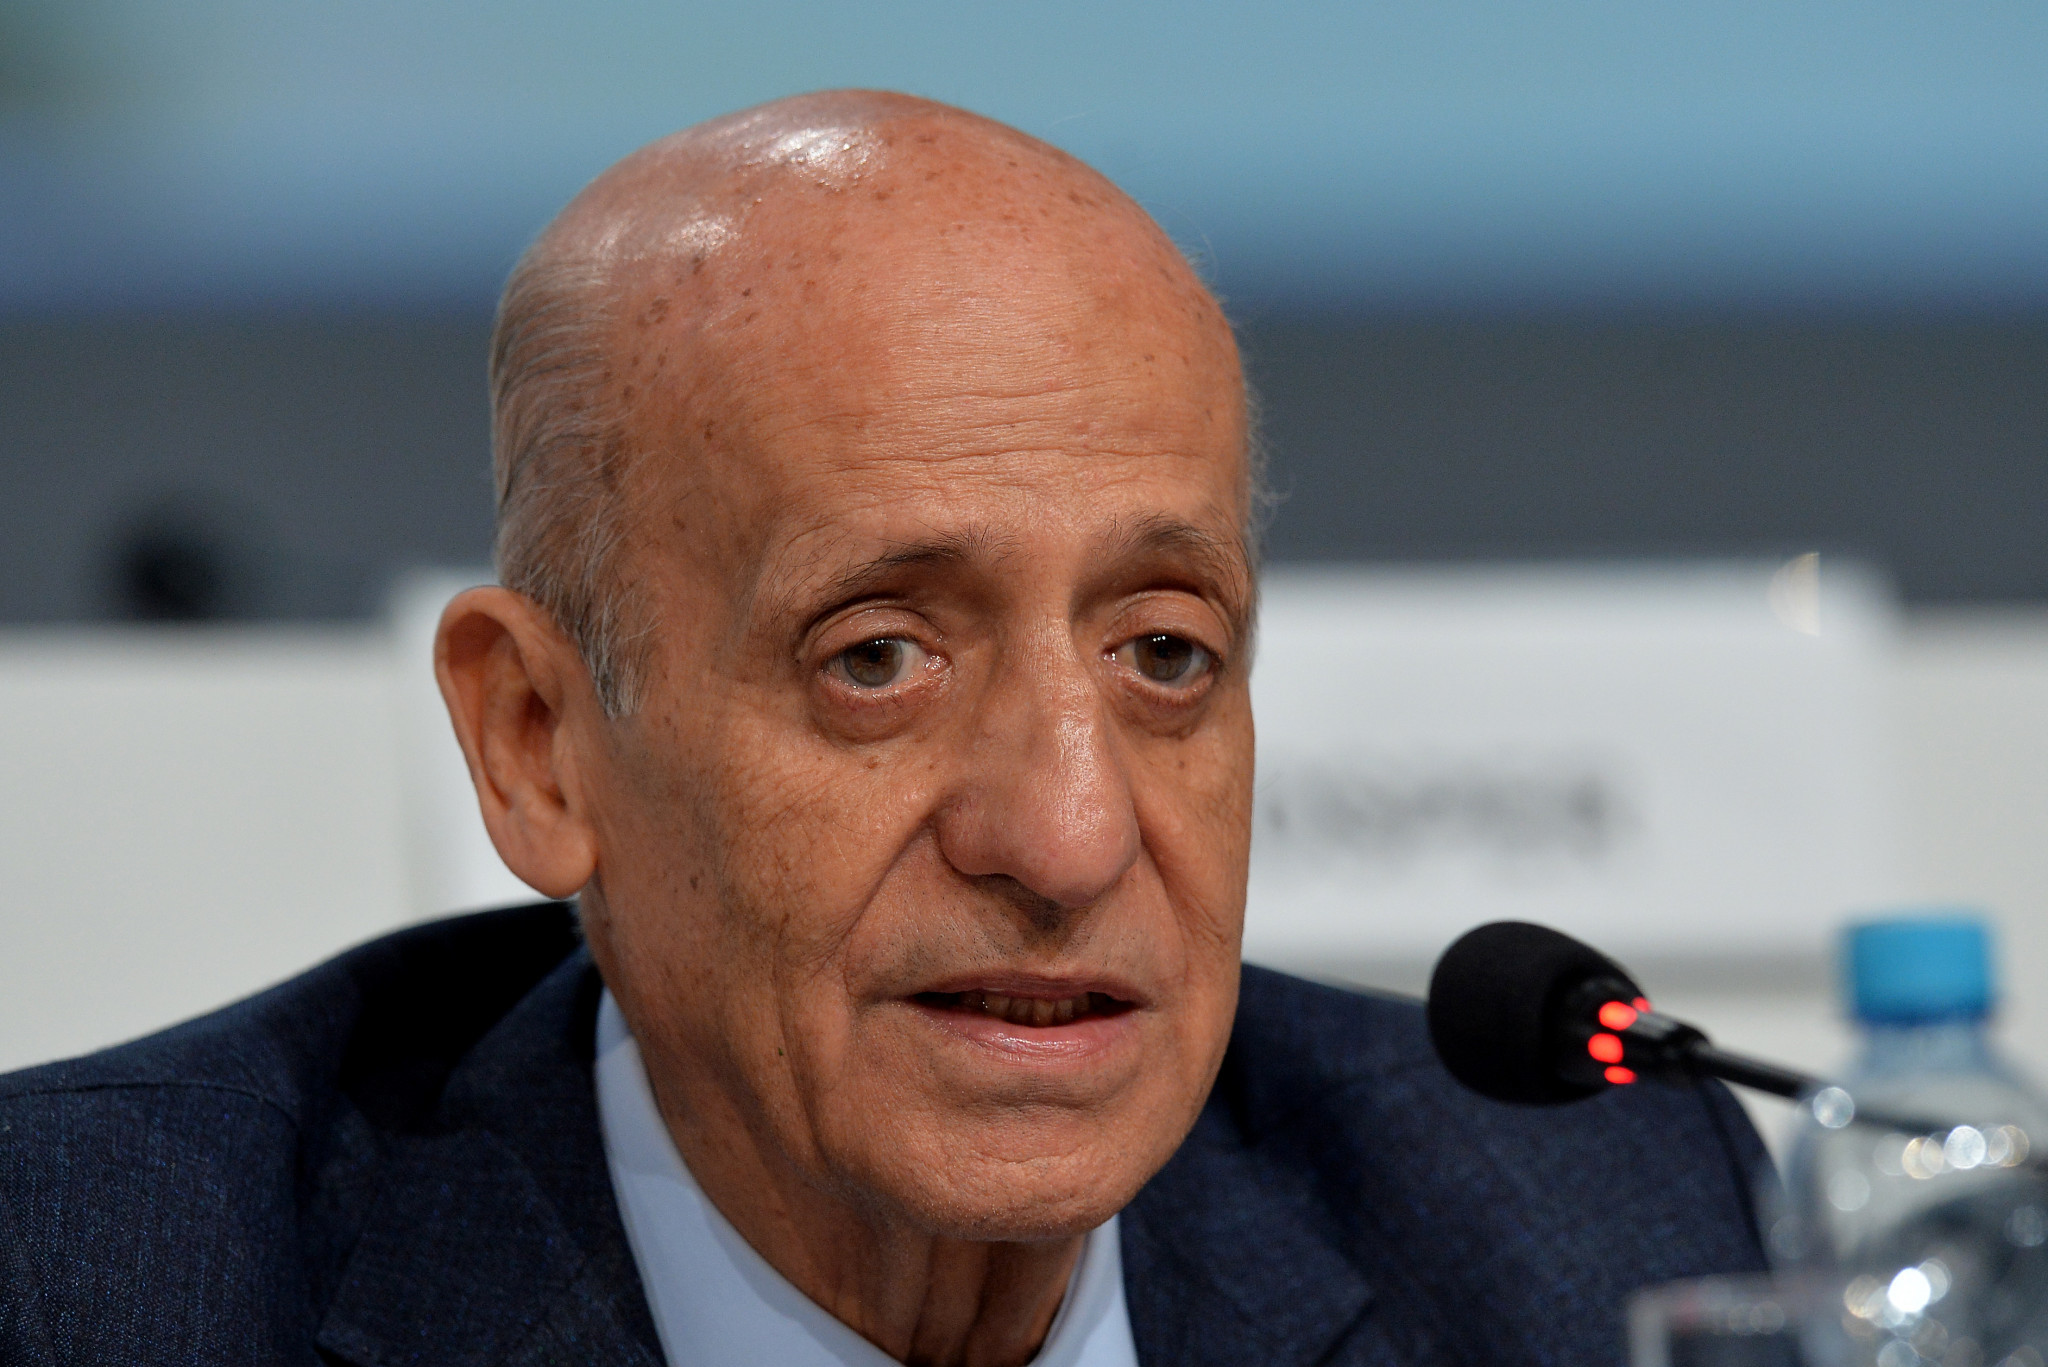 FINA President Julio Maglione claimed the body is